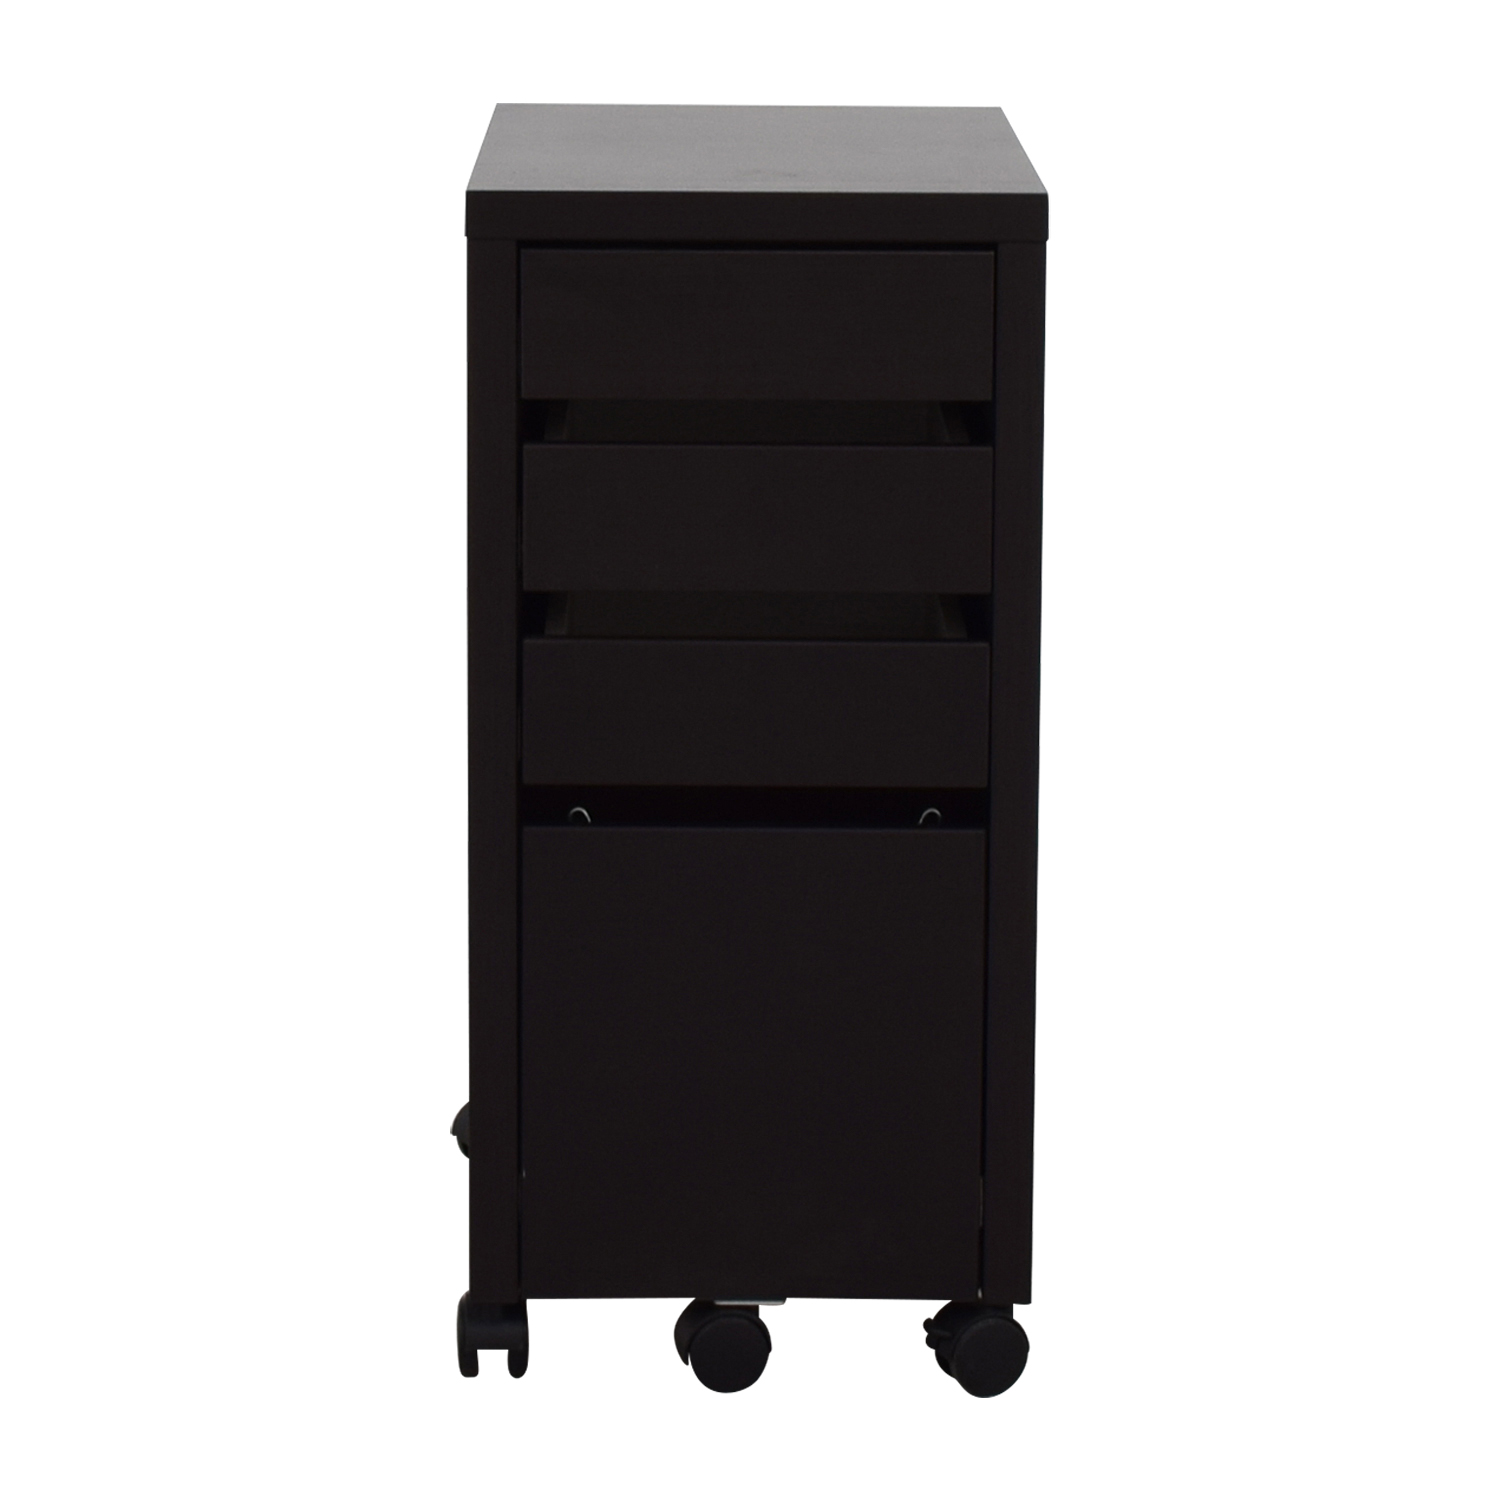 Staples Staples Black File Cabinet Storage